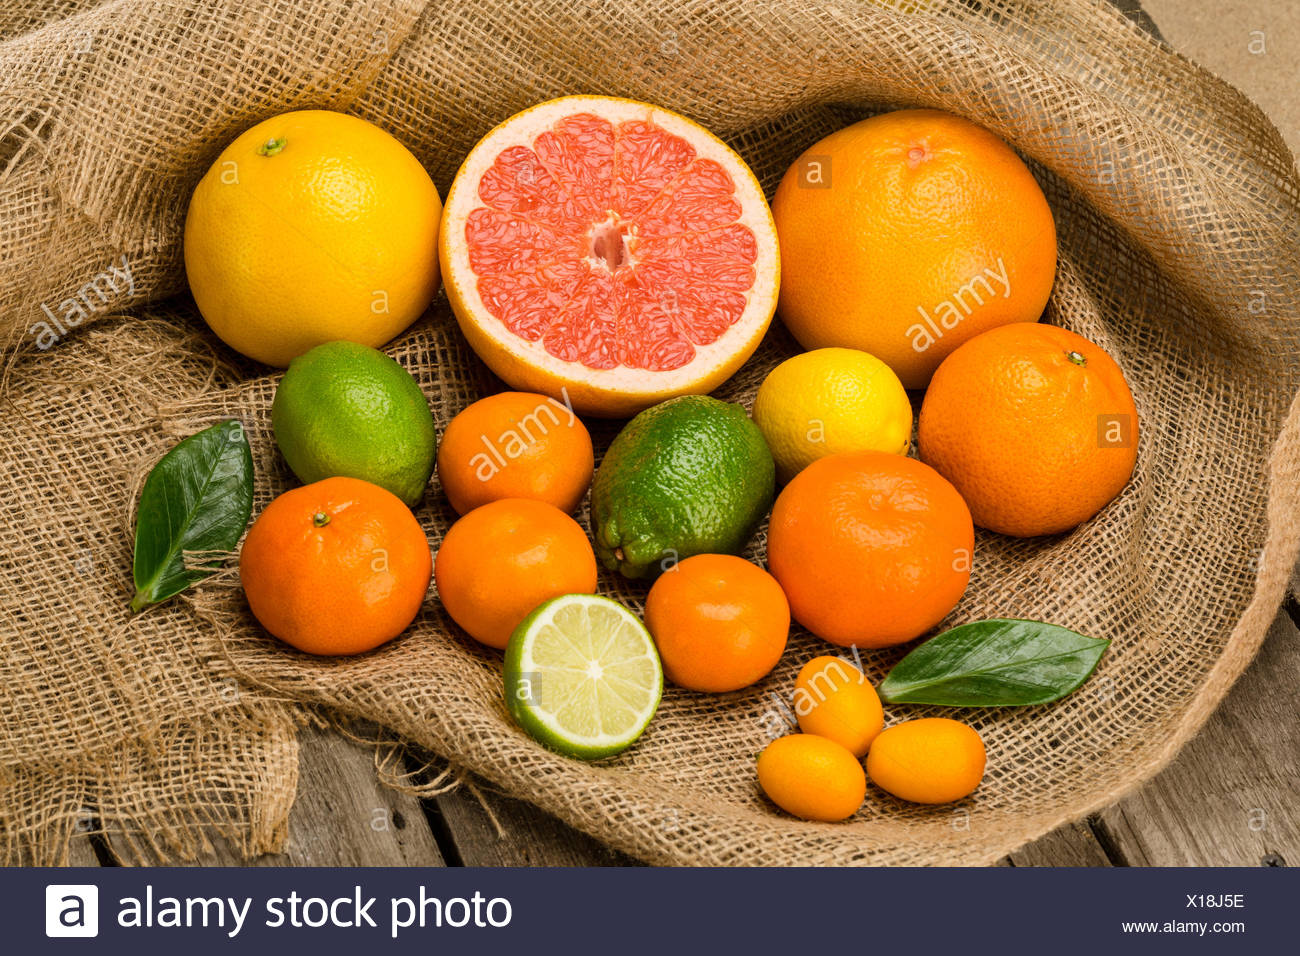 Close-up view of various whole and sliced fresh citrus fruits on sackcloth - Stock Image